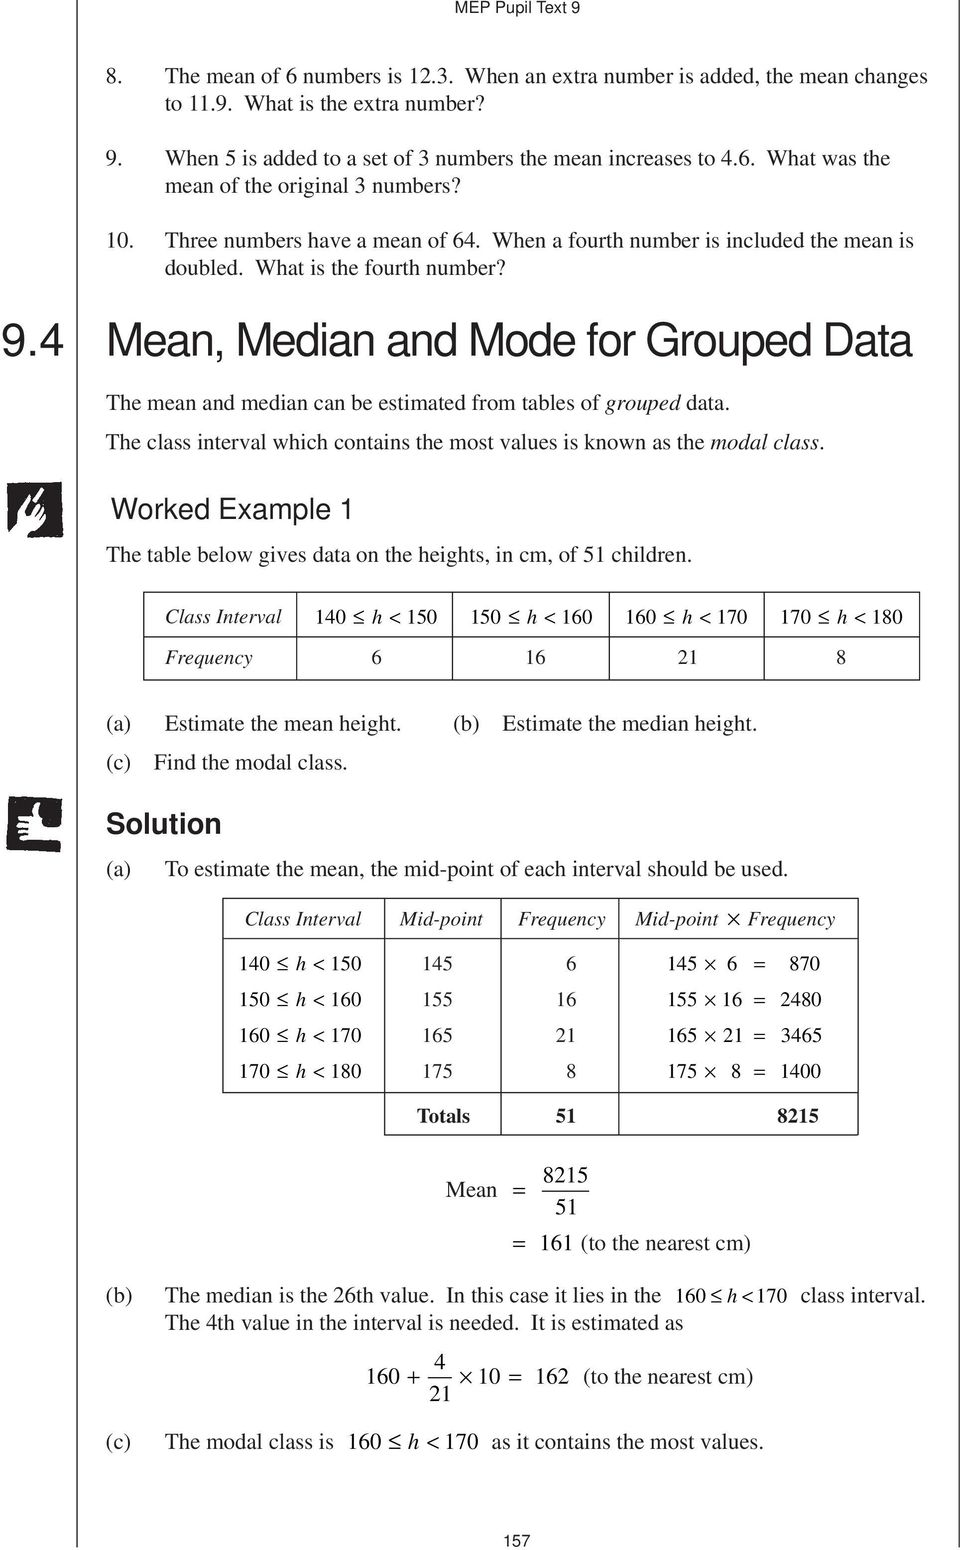 4 Mea, Media ad Mode for Grouped Data The mea ad media ca be estimated from tables of grouped data. The class iterval which cotais the most values is kow as the modal class.